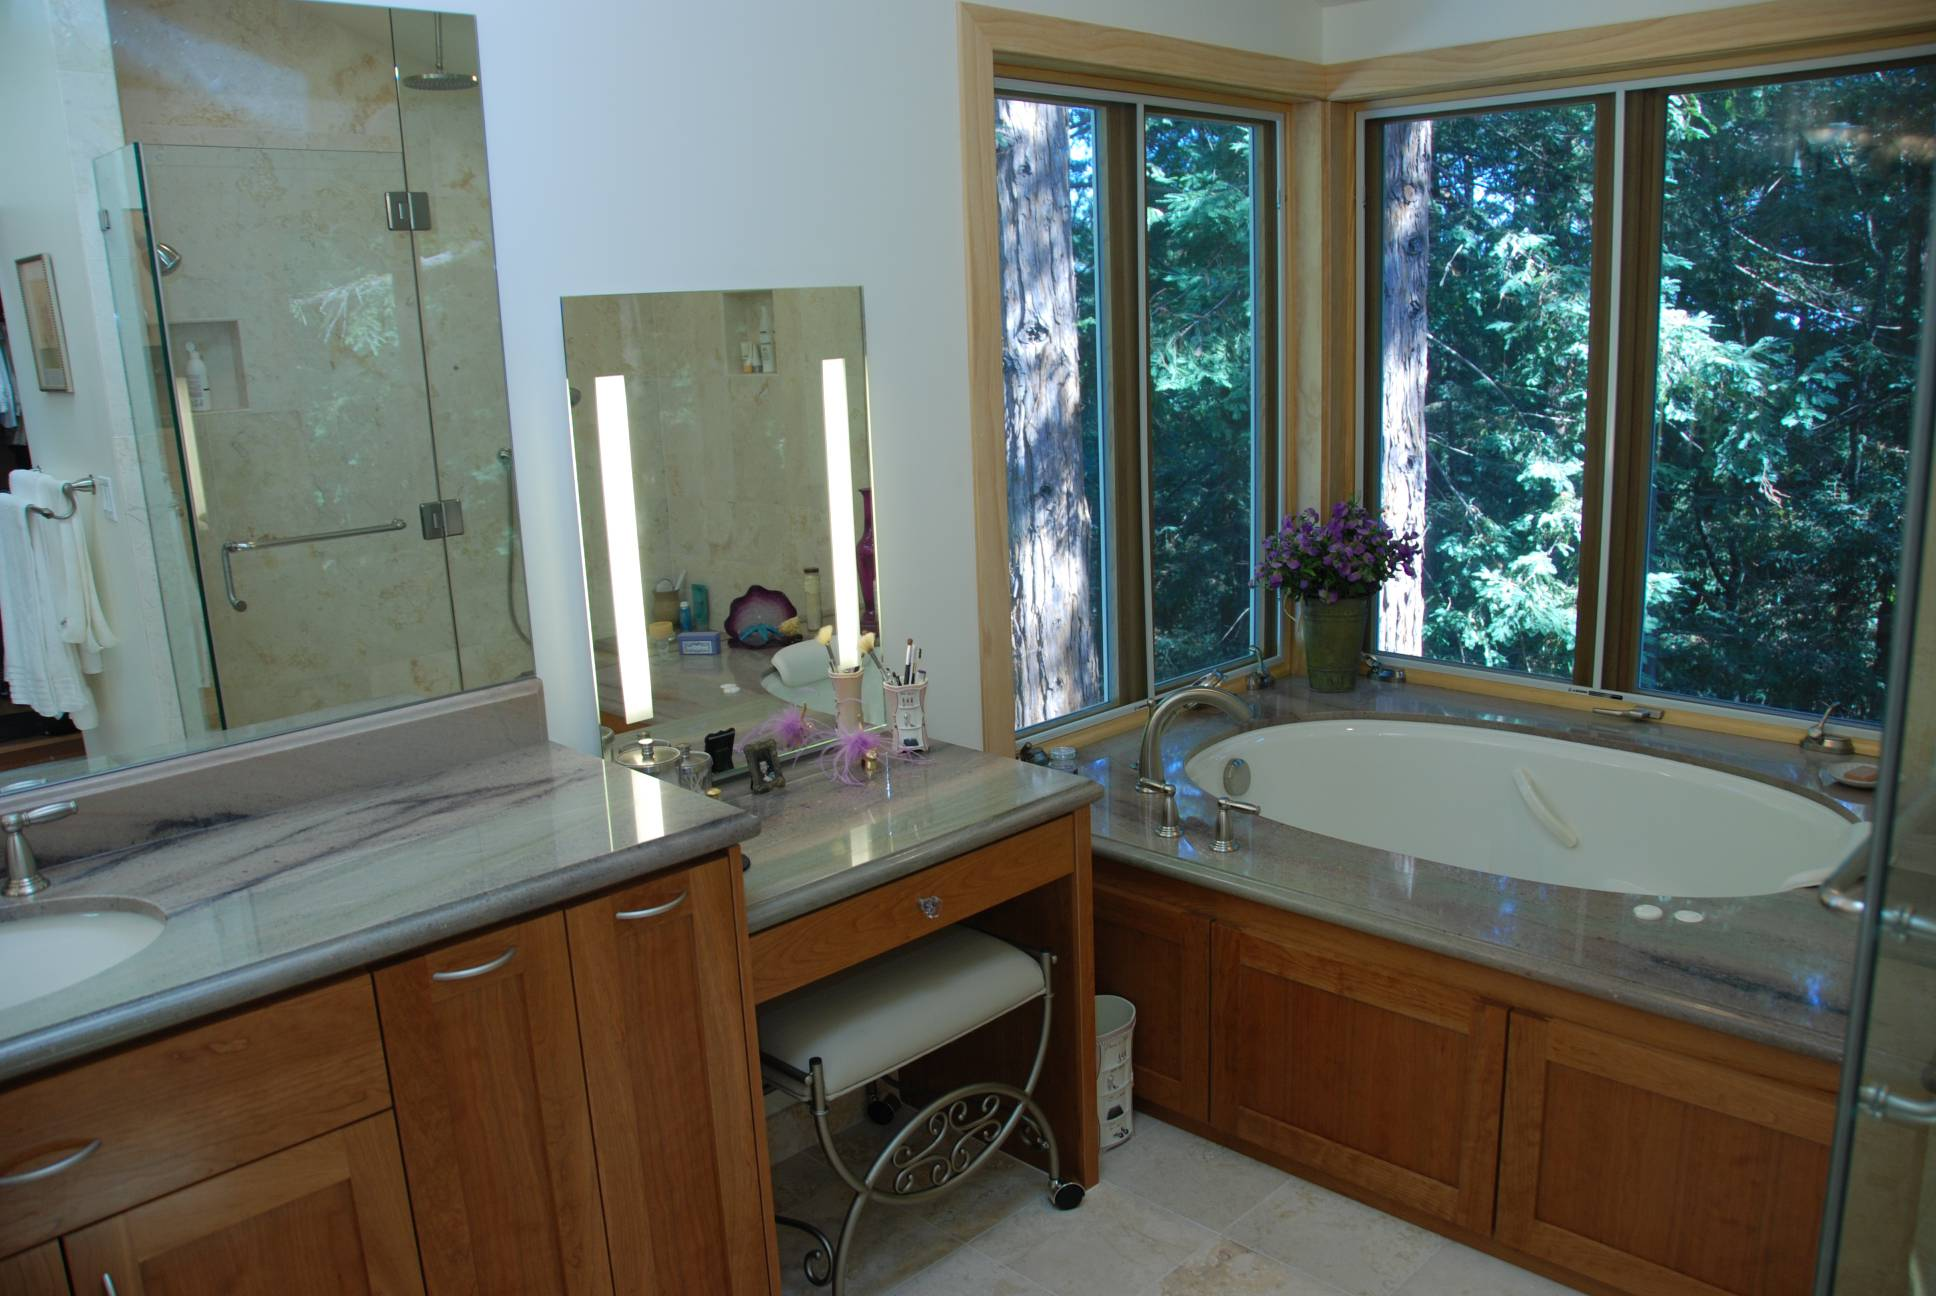 Master Bathroom whirlpool jacuzzi, Architect design, interior design work, Woodside